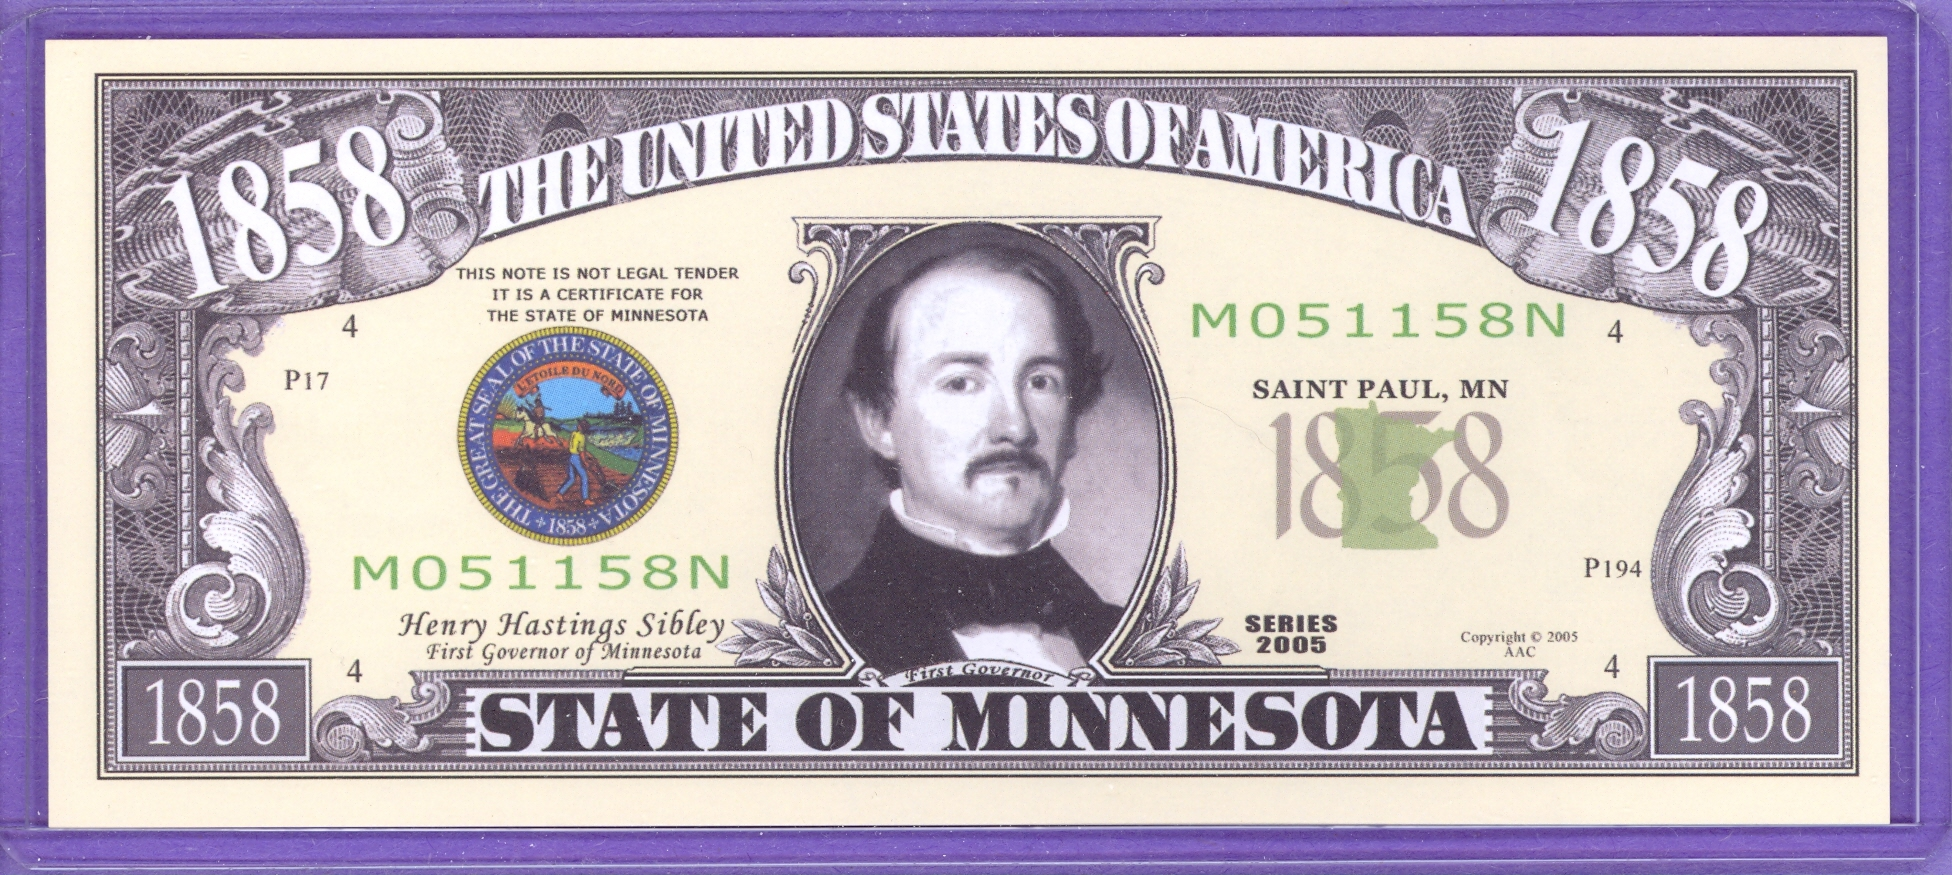 State of Minnesota Novelty or Fantasy Note